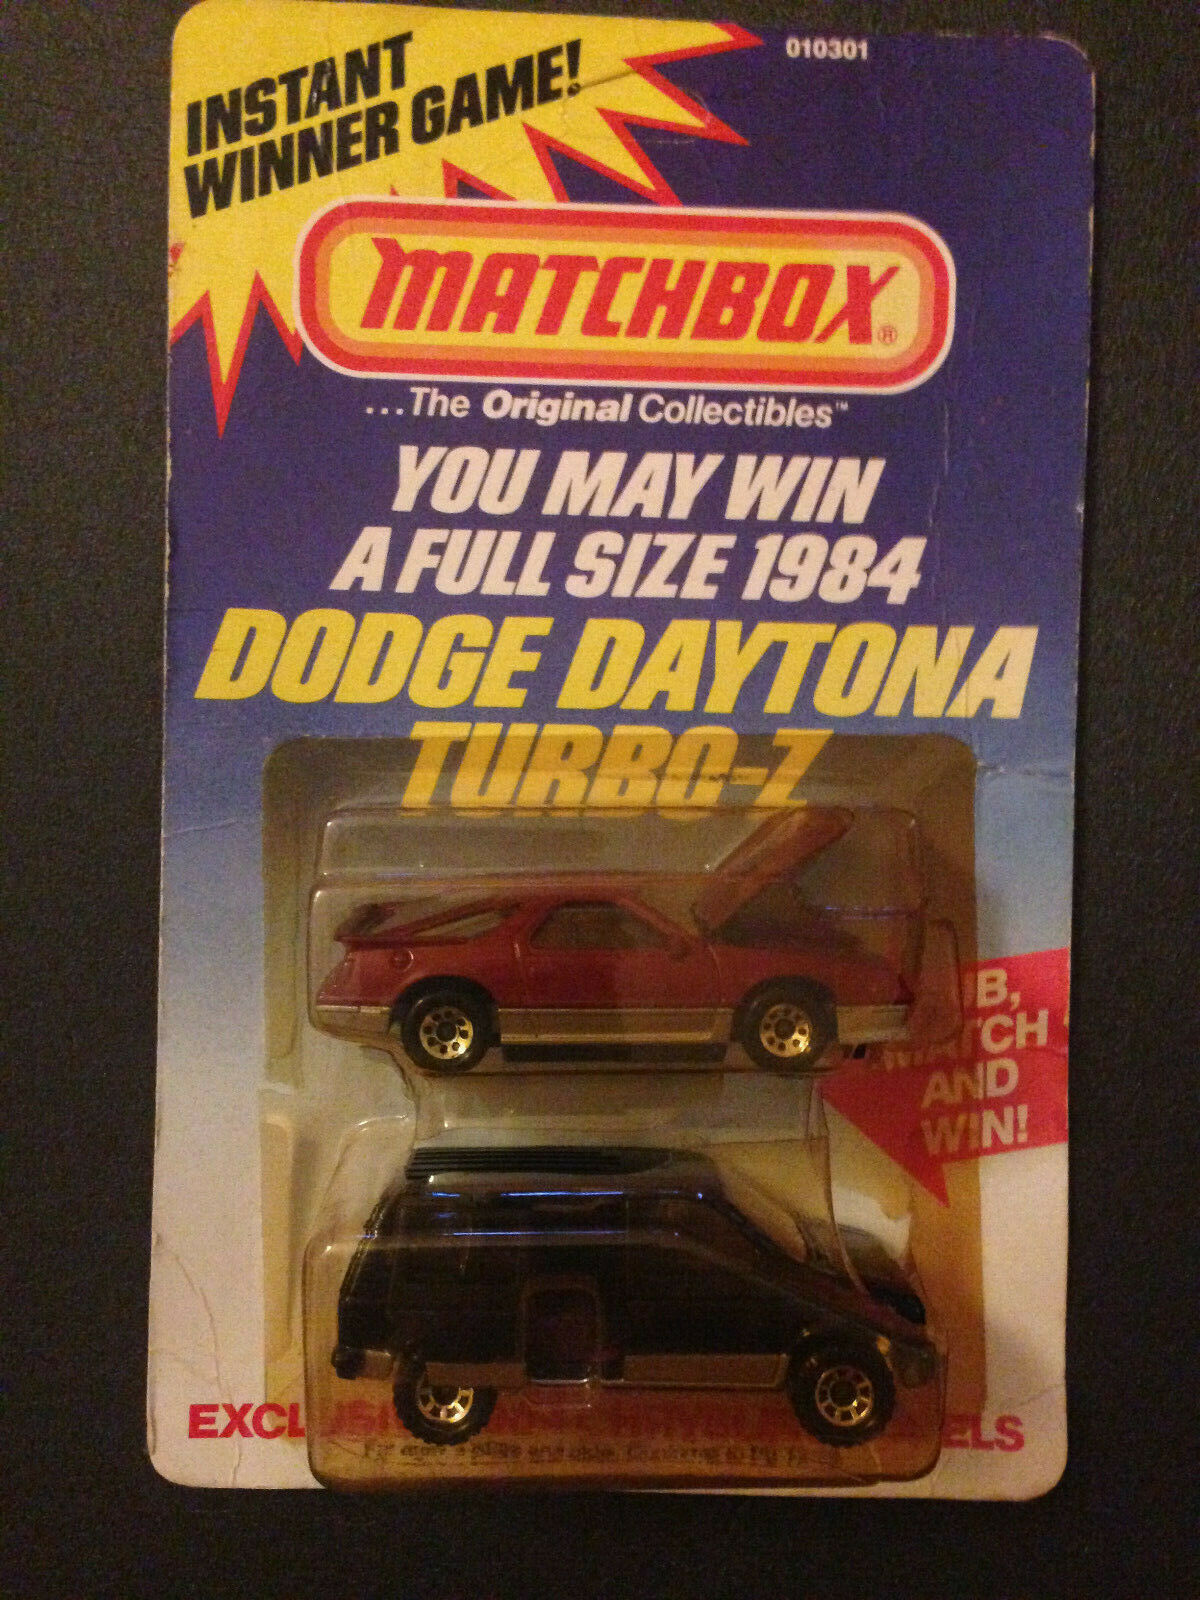 MATCHBOX Eclusive USA 1984 Chrysler Models set DODGE DAYTONA TURBO-Z + Caravane